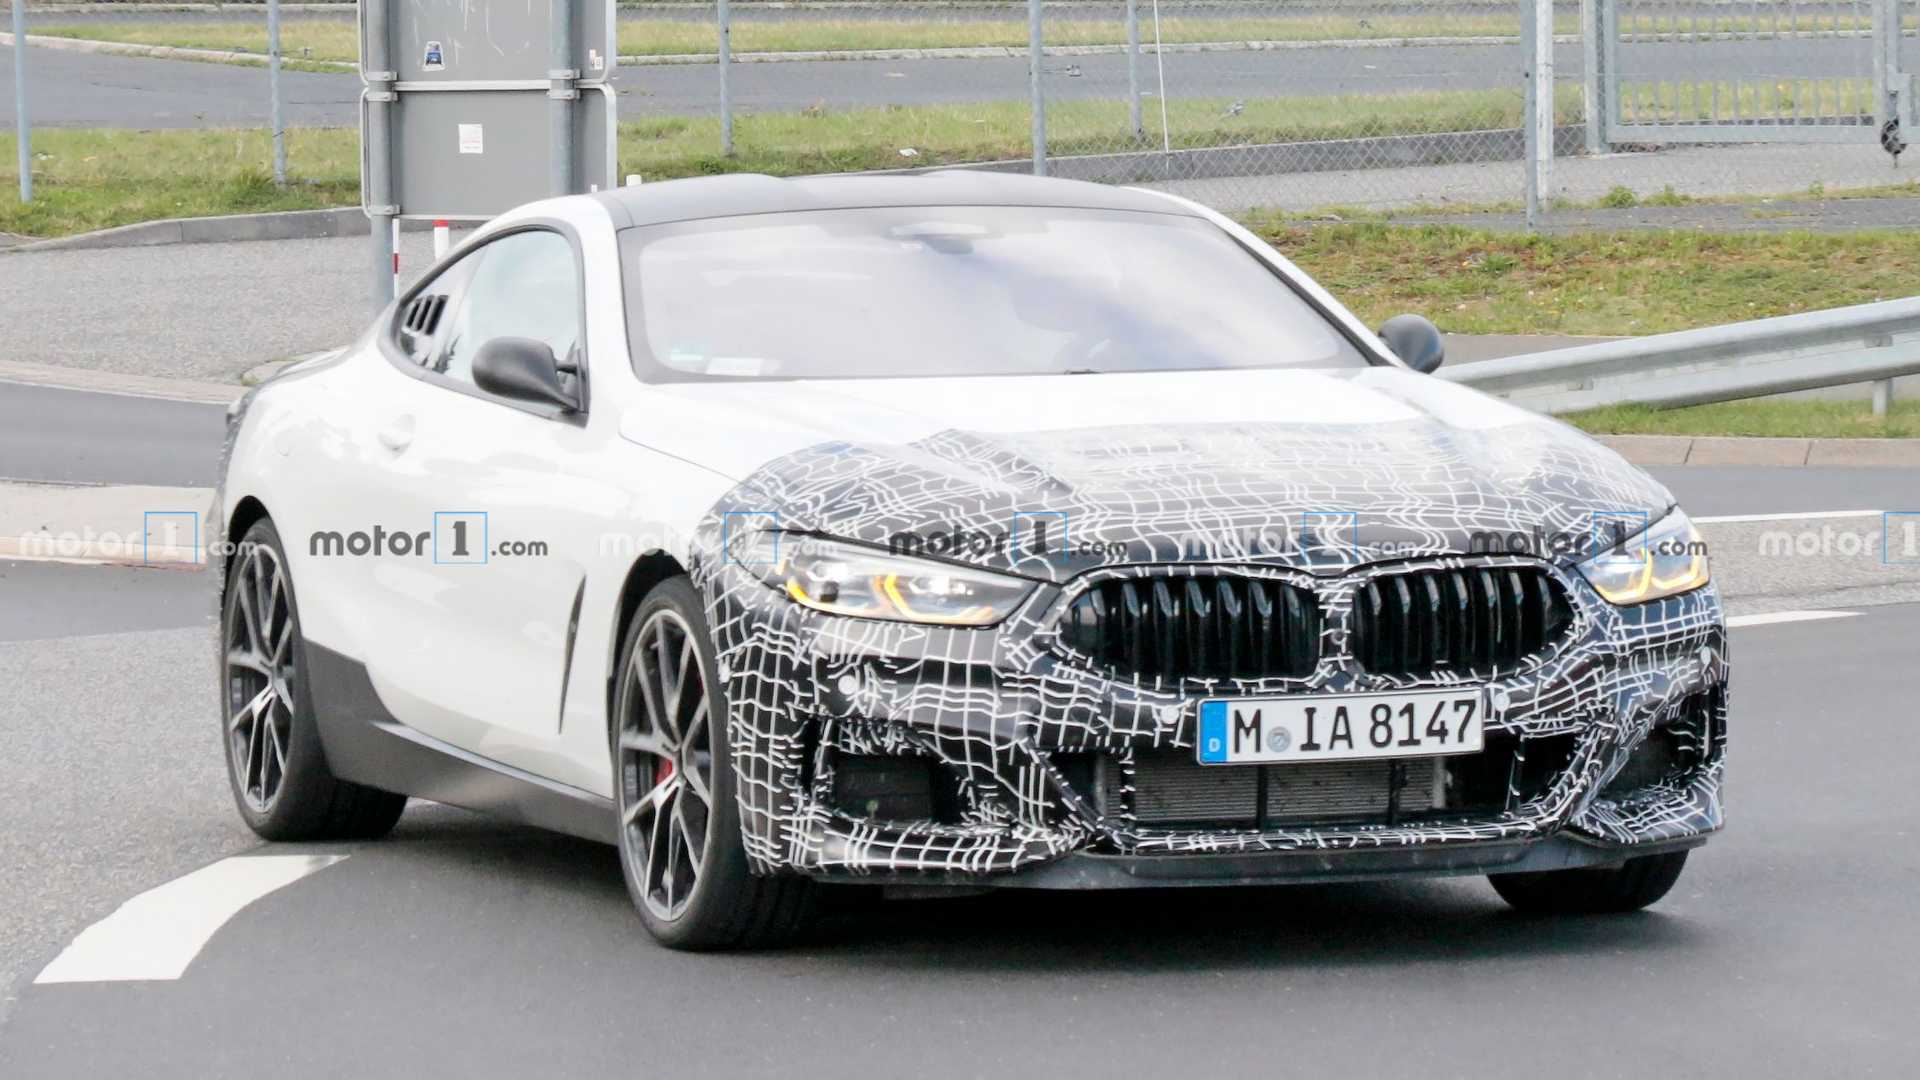 One might think this BMW 8 Series test mule recently spied at the Nürburgring is just a regular coupe partially wrapped in camo, but a number of signs indicate that it may very well be a mid-engined track tool with much more to it than meets the eye.